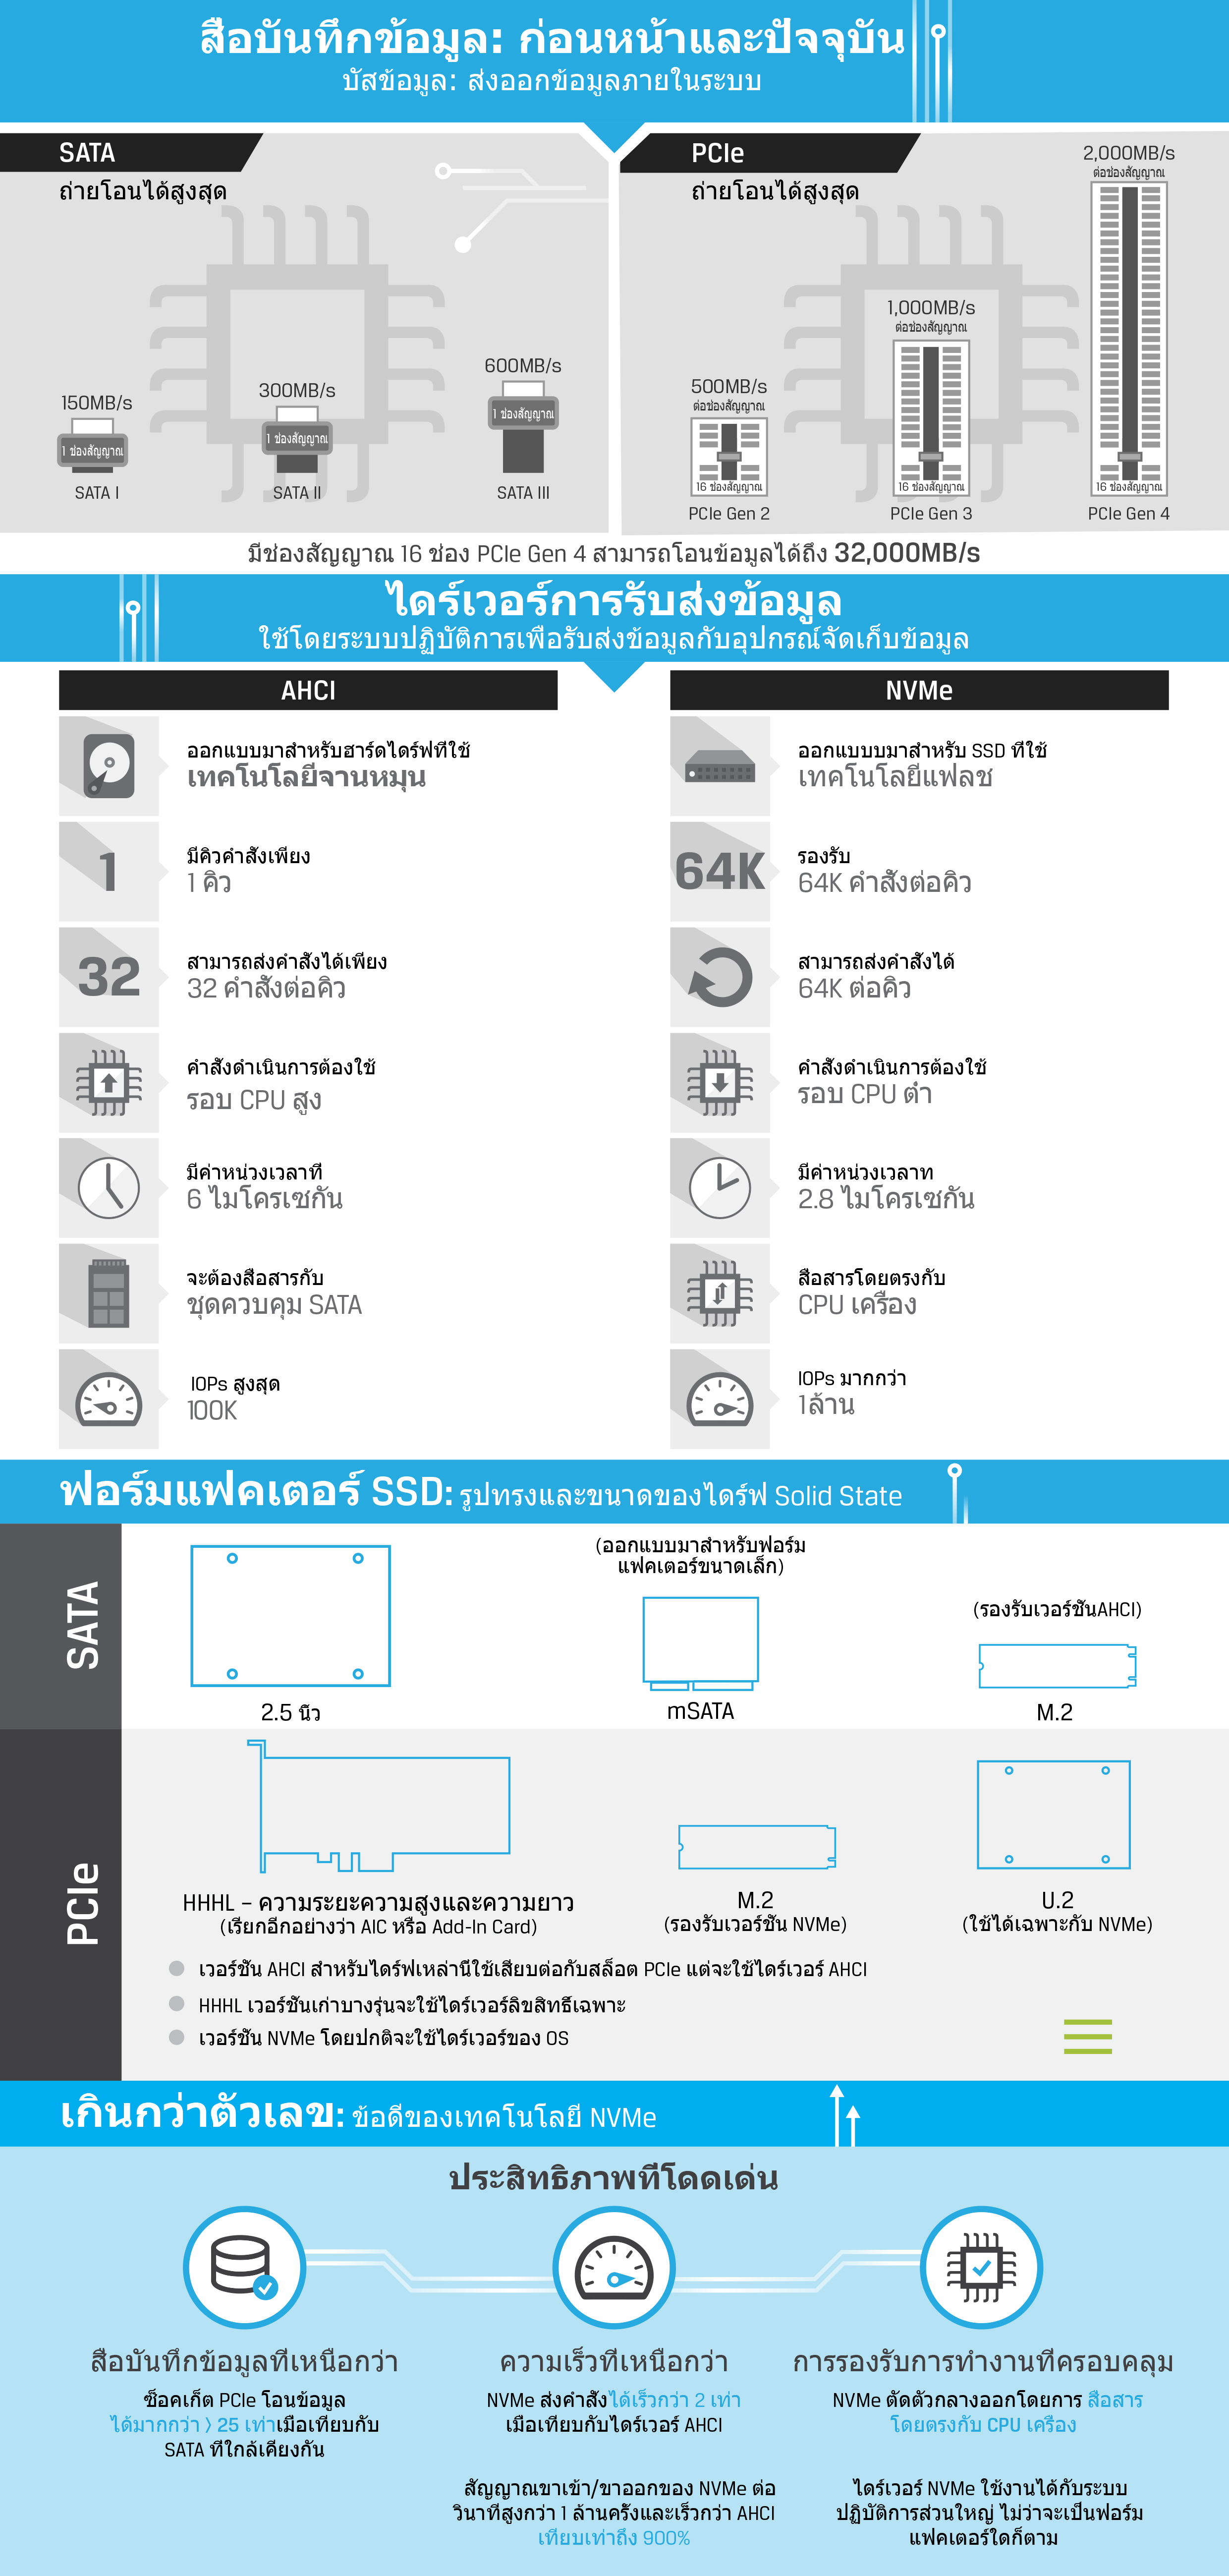 Infographic describing SSD Technology such as NVMe, SATA, PCIe, AHCI, M.2 and U.2